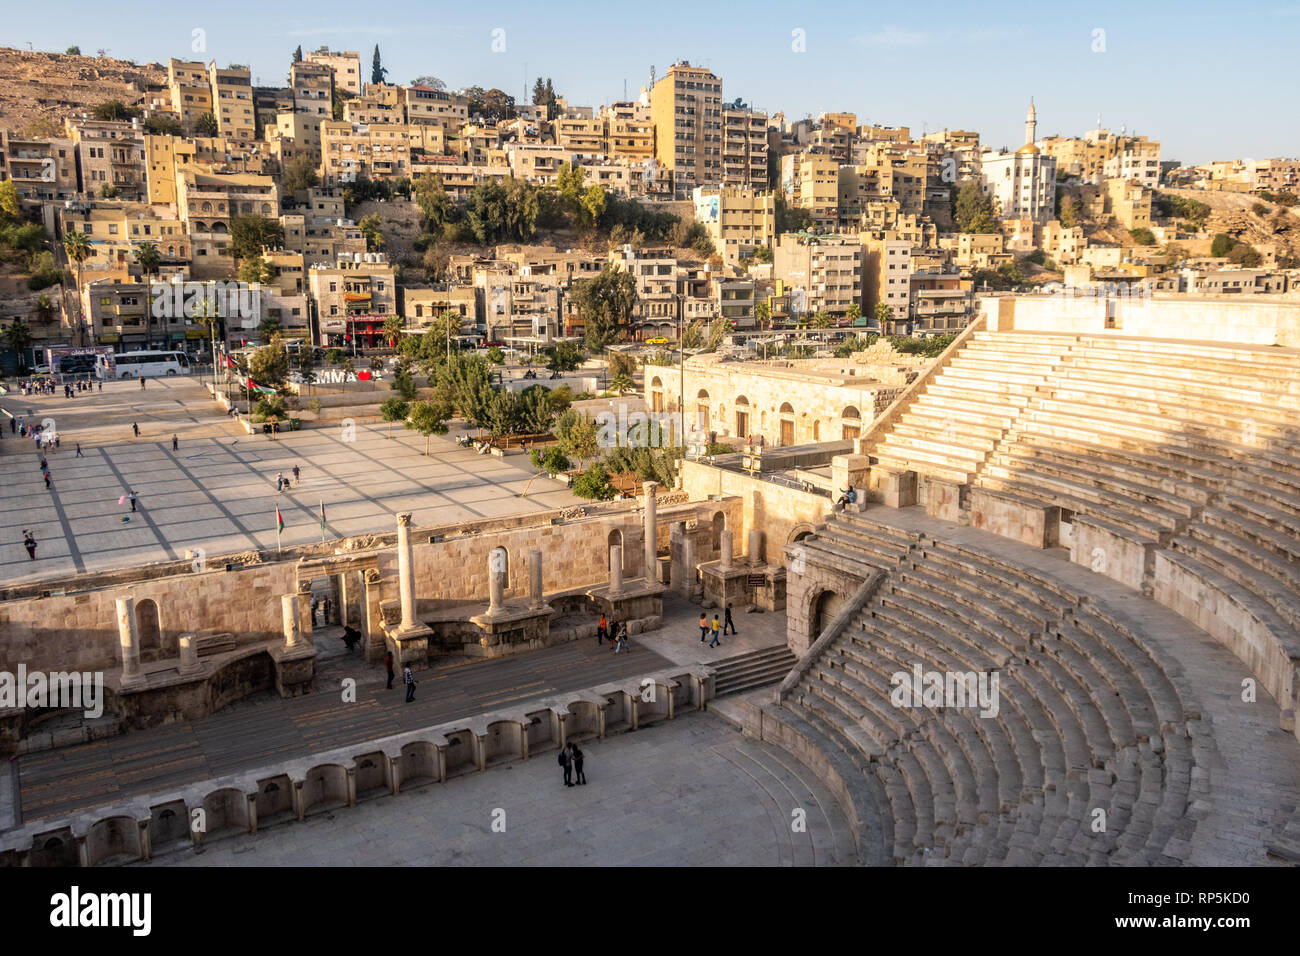 View of the Jordanian capital Amman, featuring the Roman amphitheatre and the smaller ancient amphitheatre Odeon, flanking the Hashemite Plaza. Stock Photo